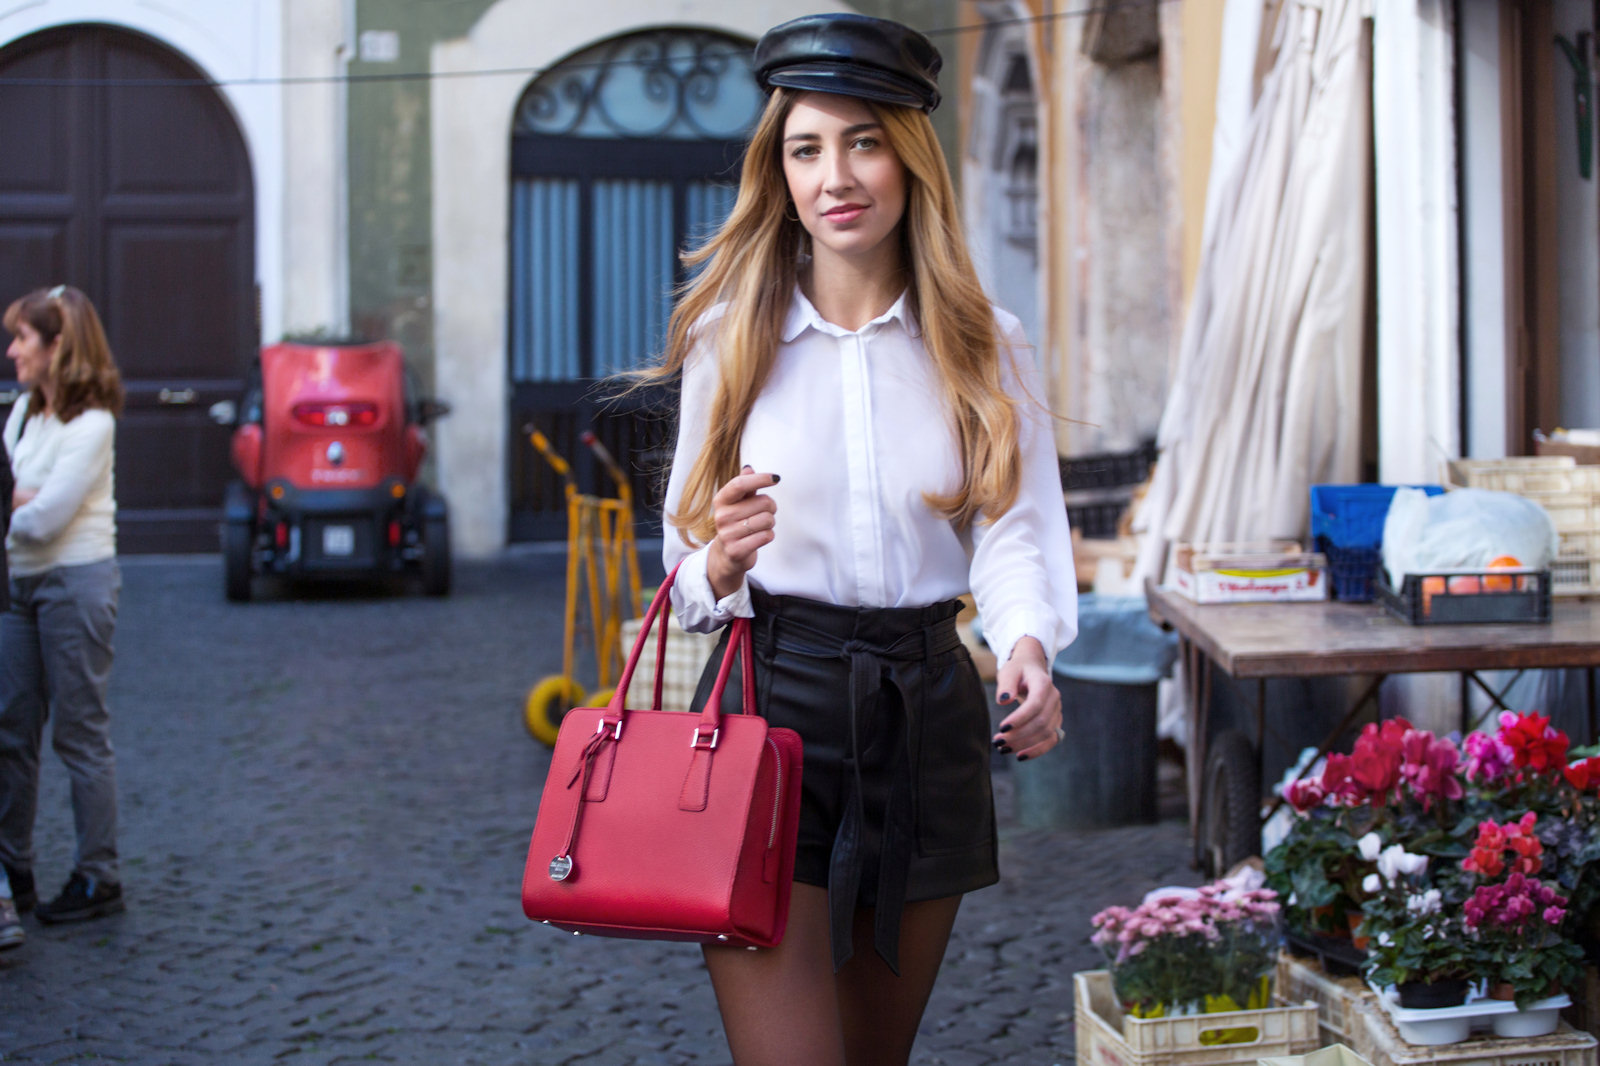 Italian Leather Handbags Online